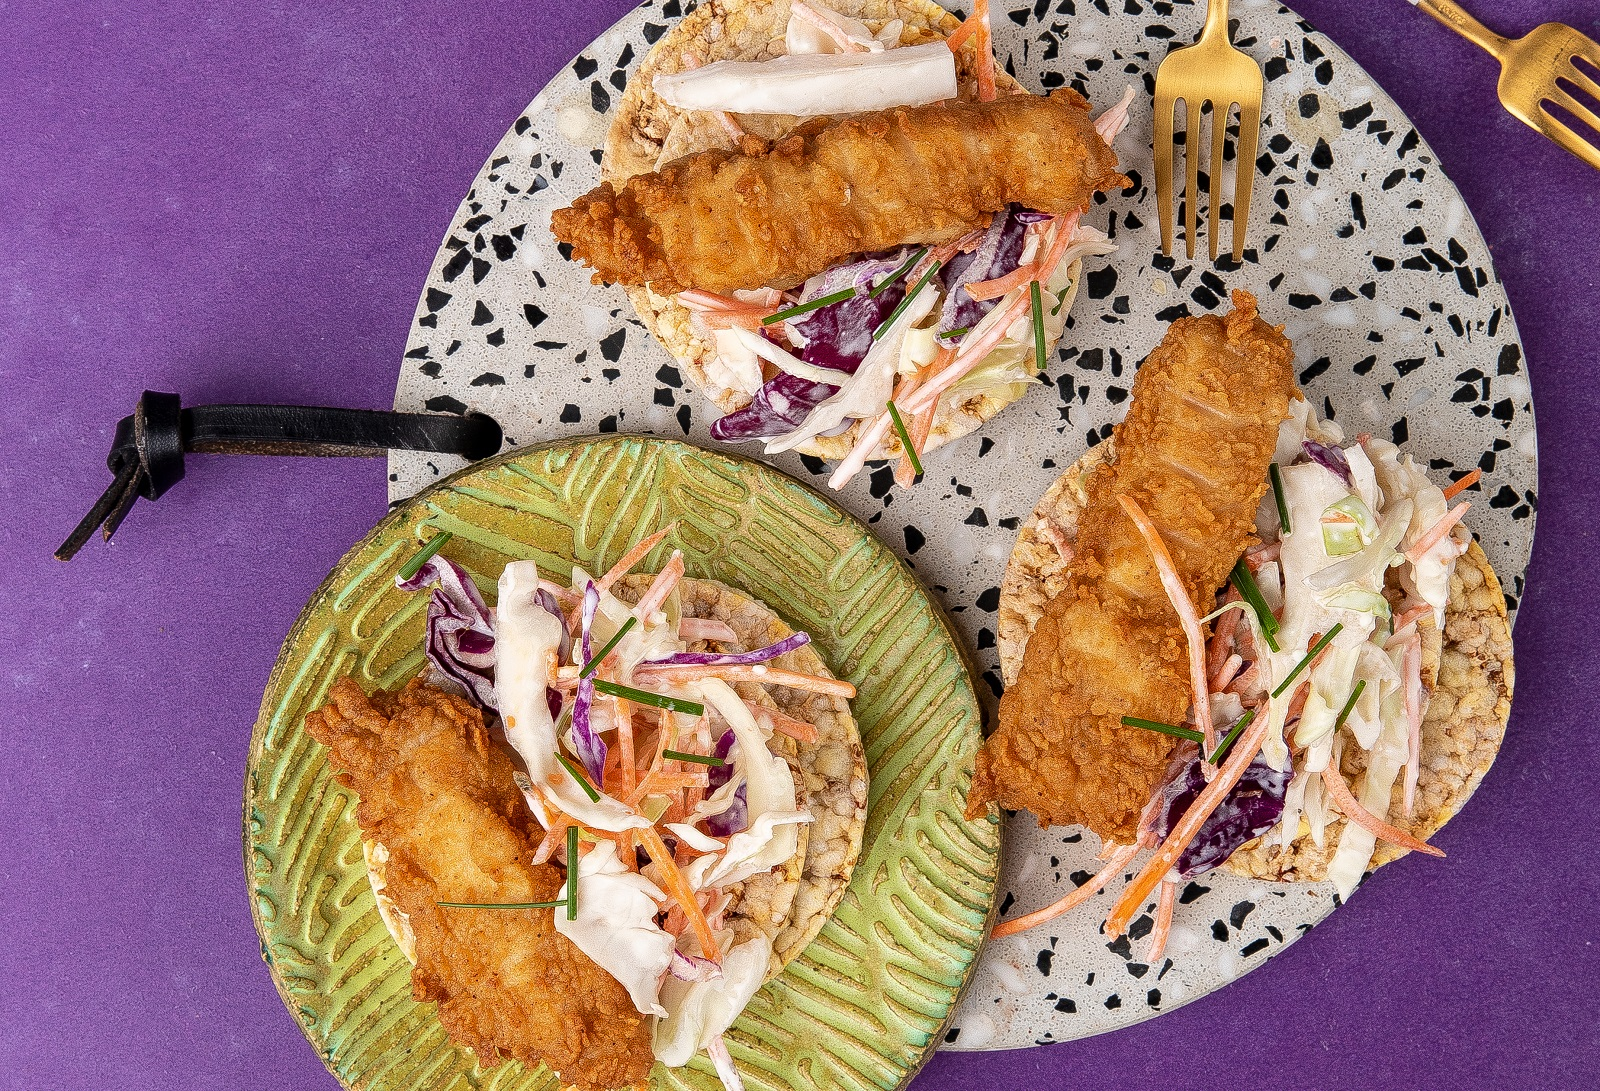 Crispy Chicken & Coleslaw on CORN THINS slices for lunch